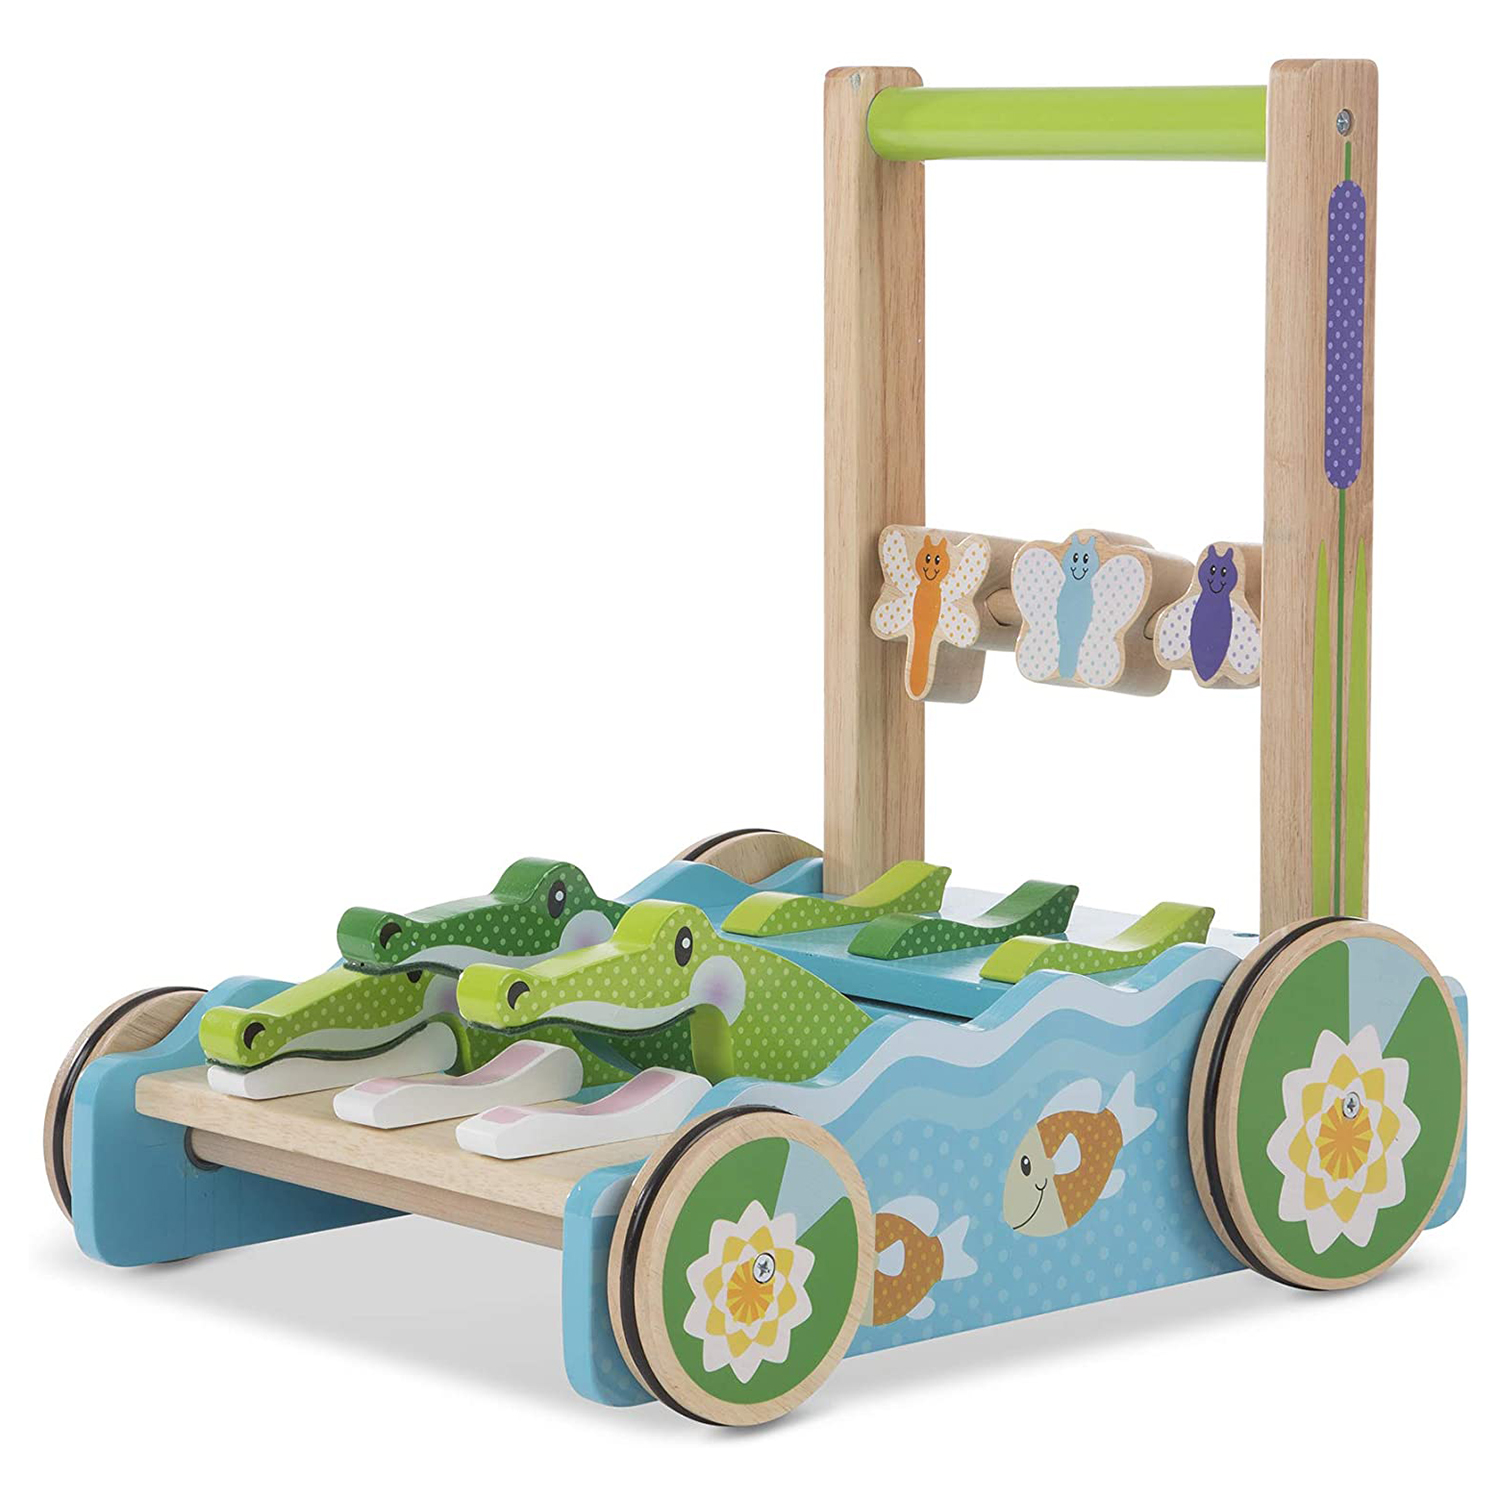 Best Wooden Baby Toy: Melissa and Doug Chomp and Clack Alligator Push Toy